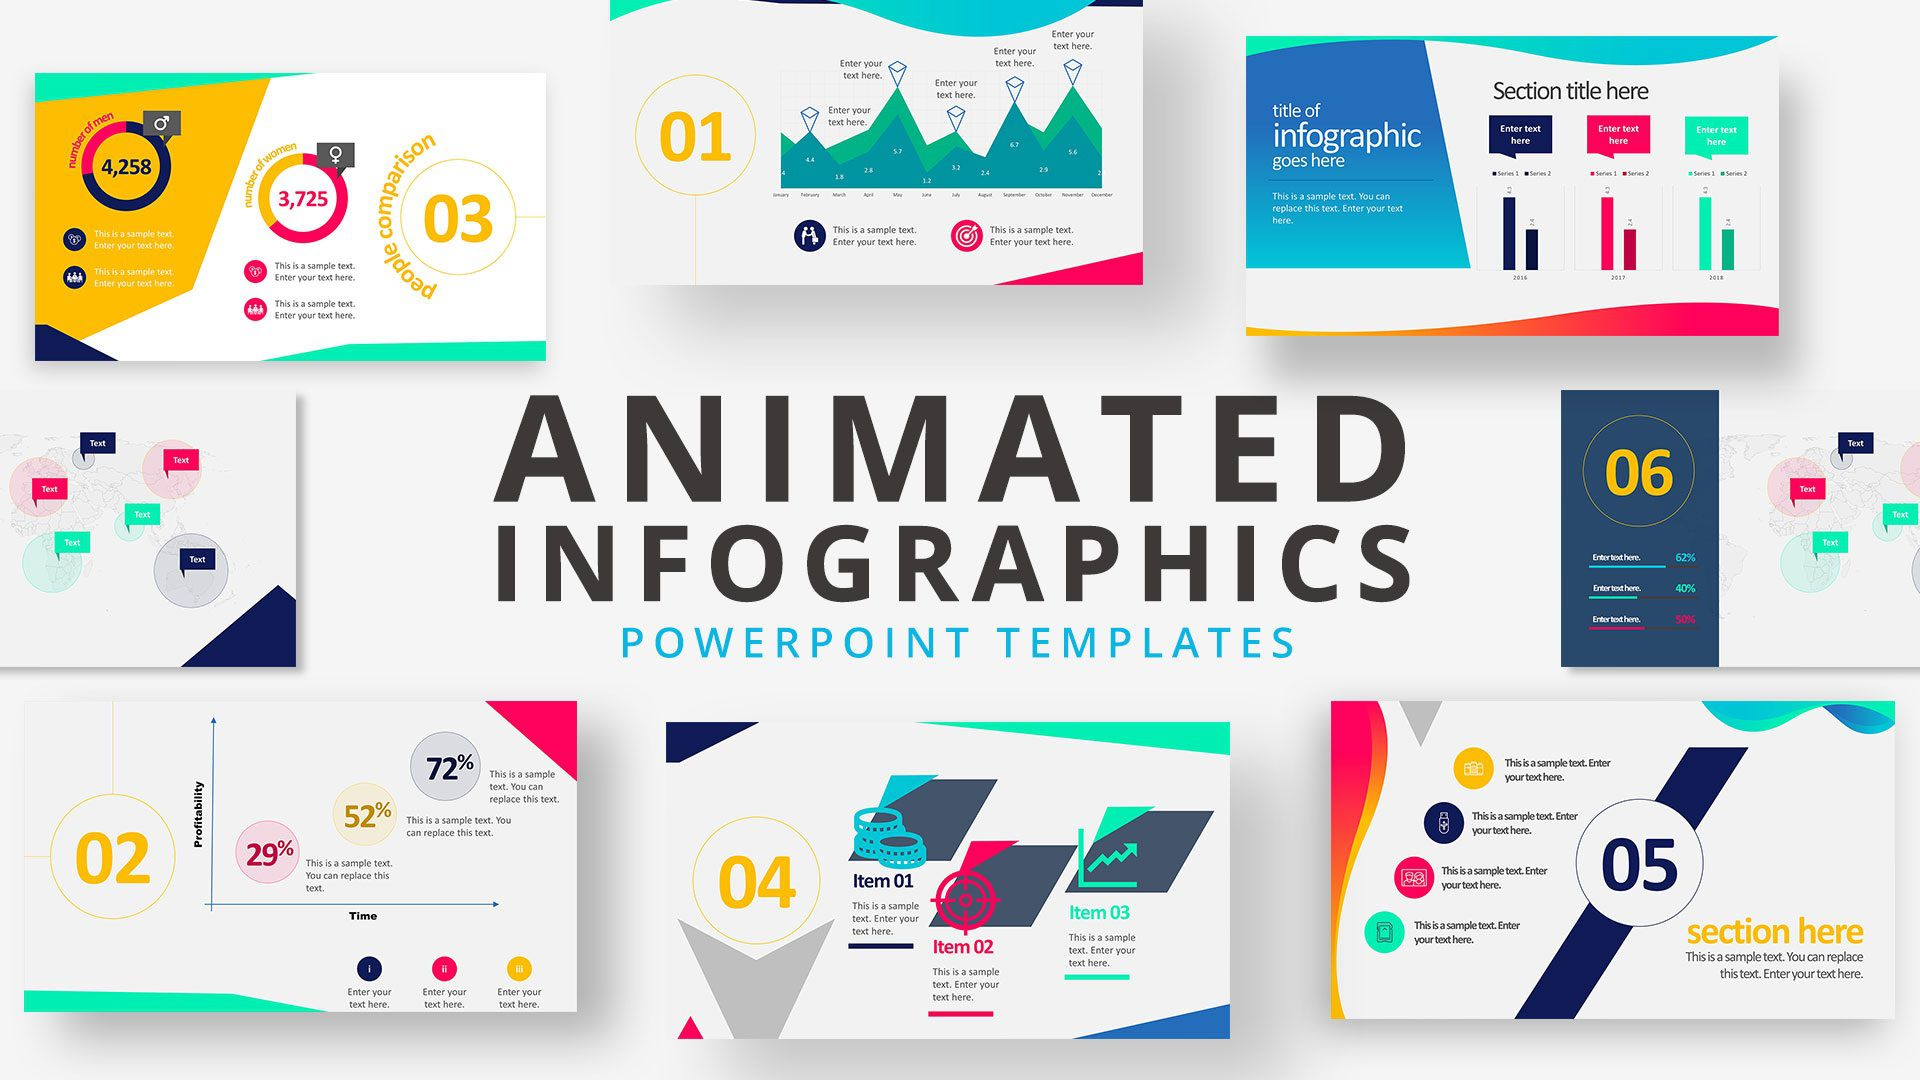 008 Excellent Animated Powerpoint Template Free Download High Def  2019 3d 2016 EducationFull